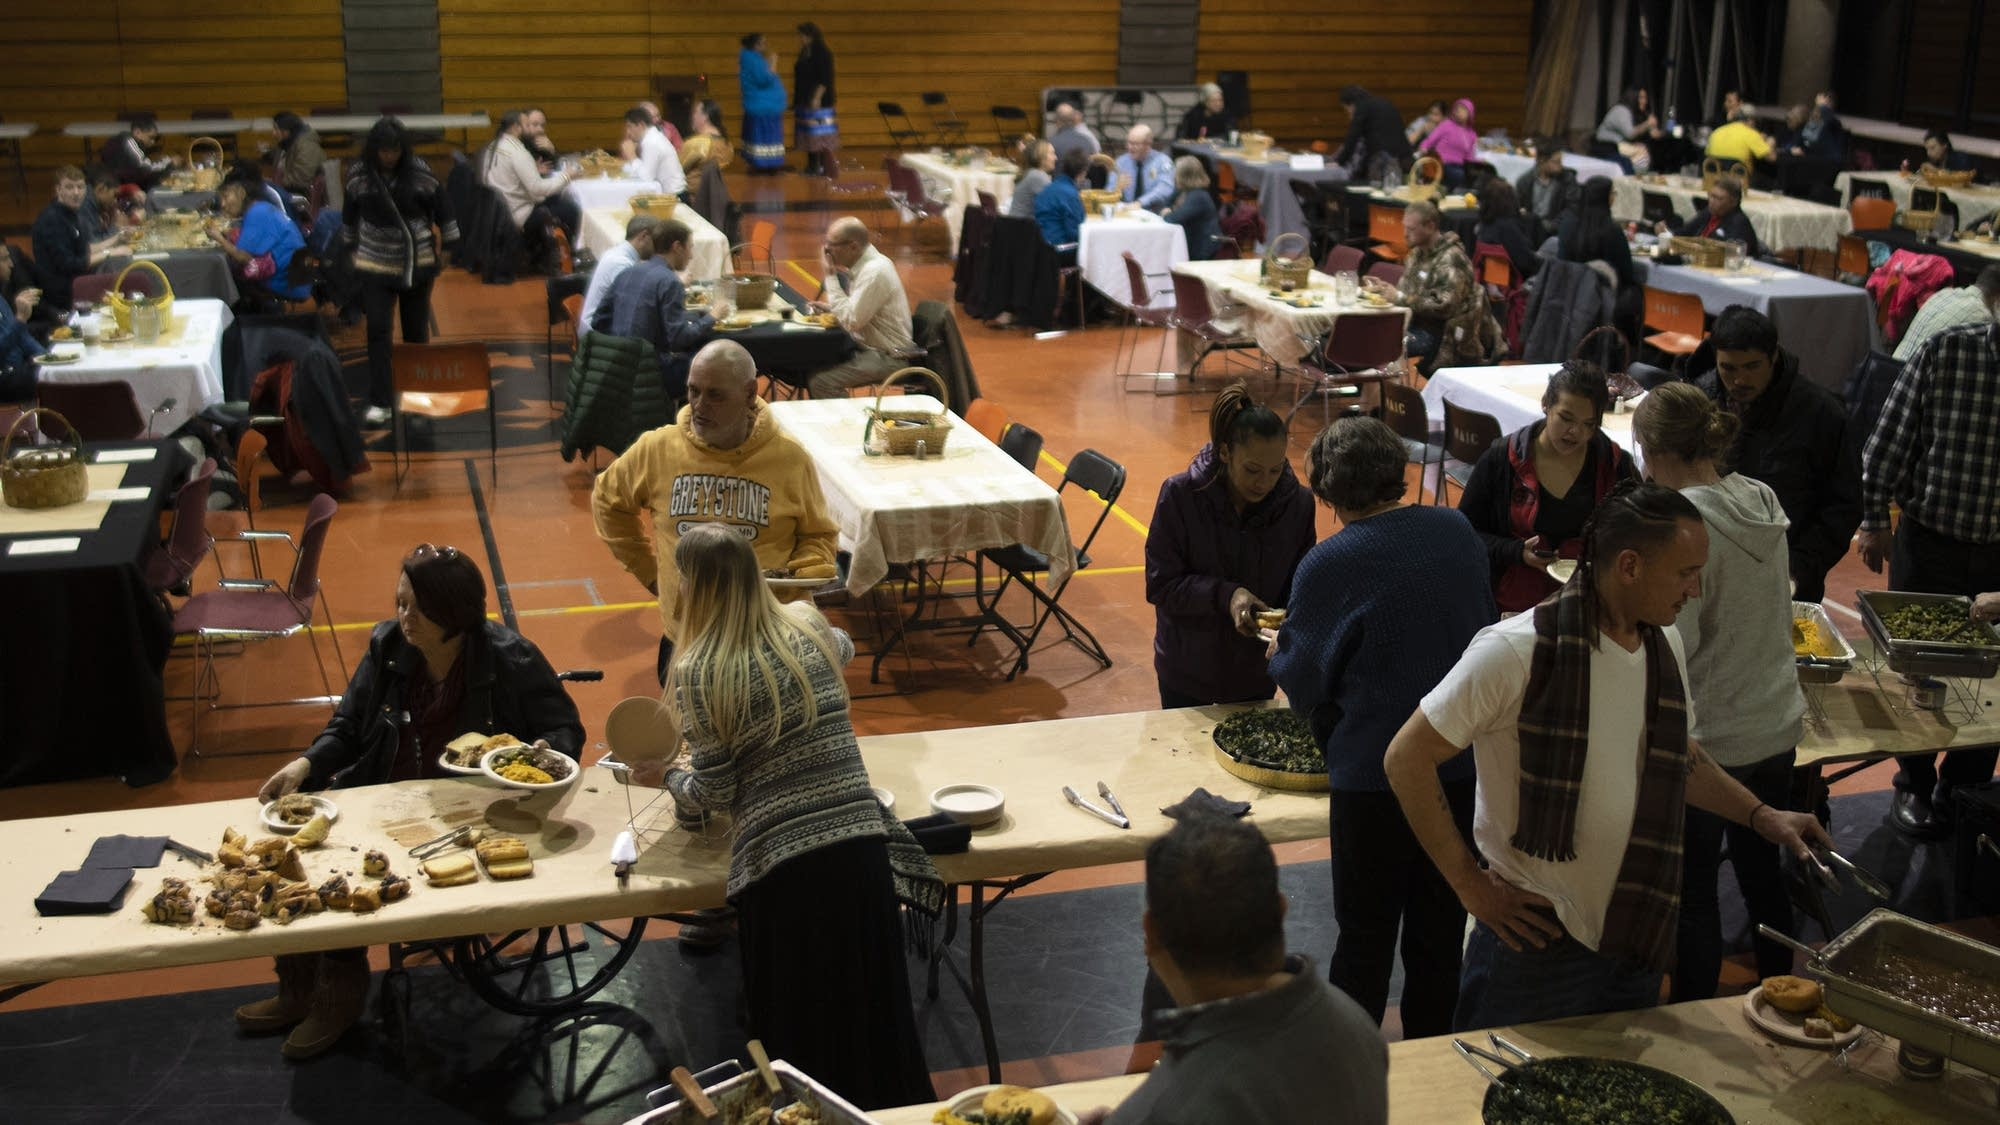 Community members came together for a feast.